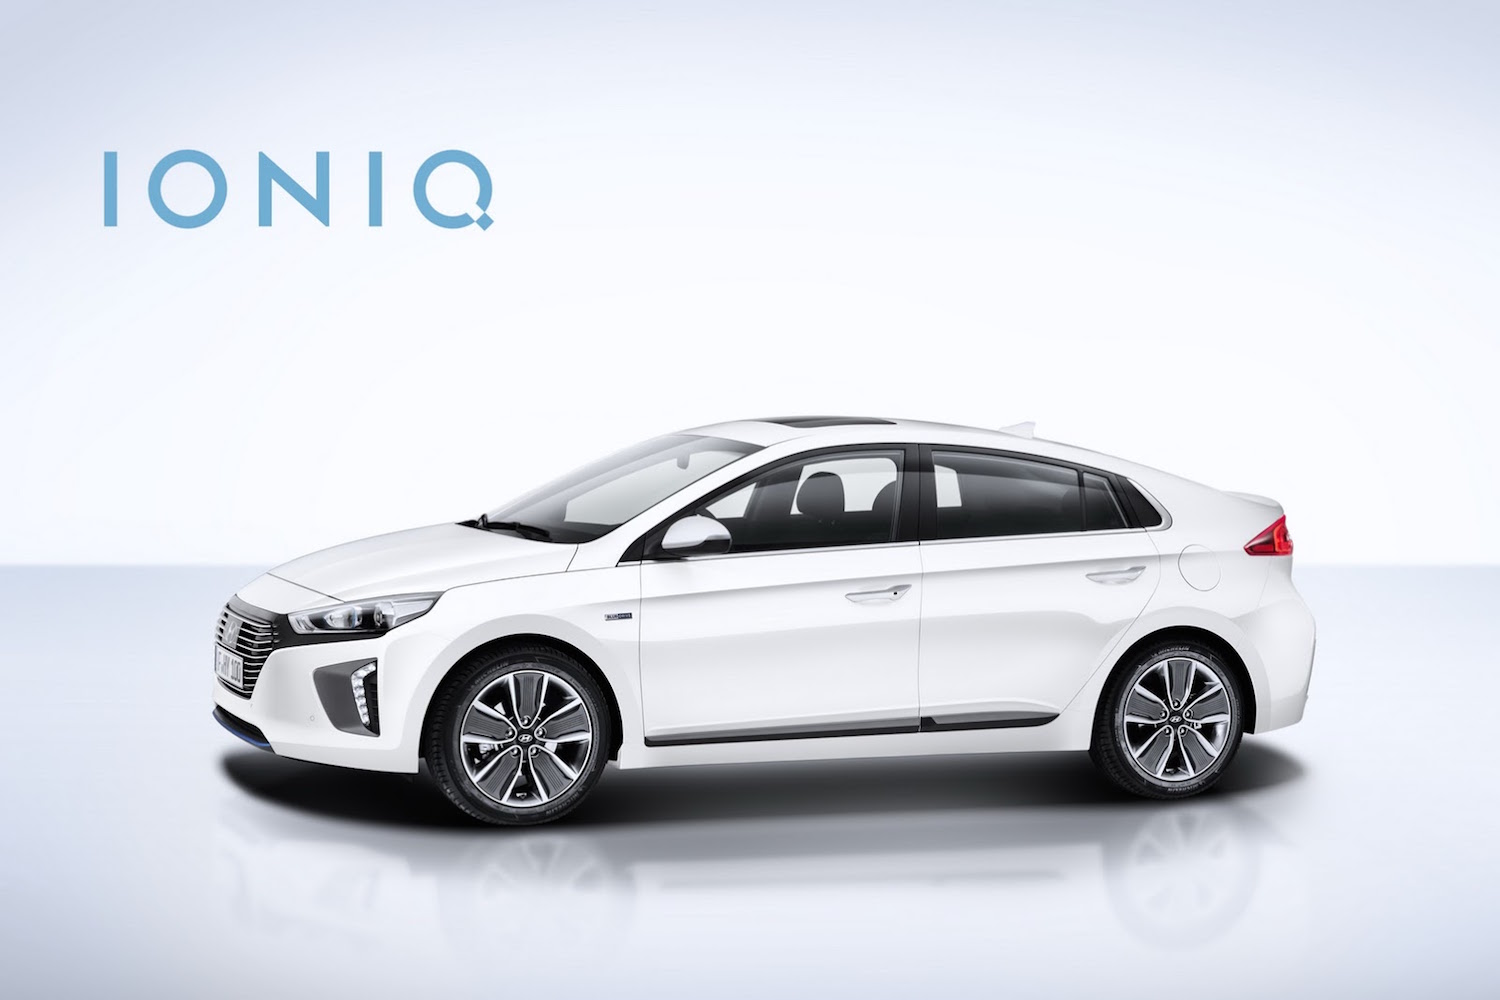 Ioniq Charge: Hyundai Prices Its New Hybrid and EV to Undercut Rivals